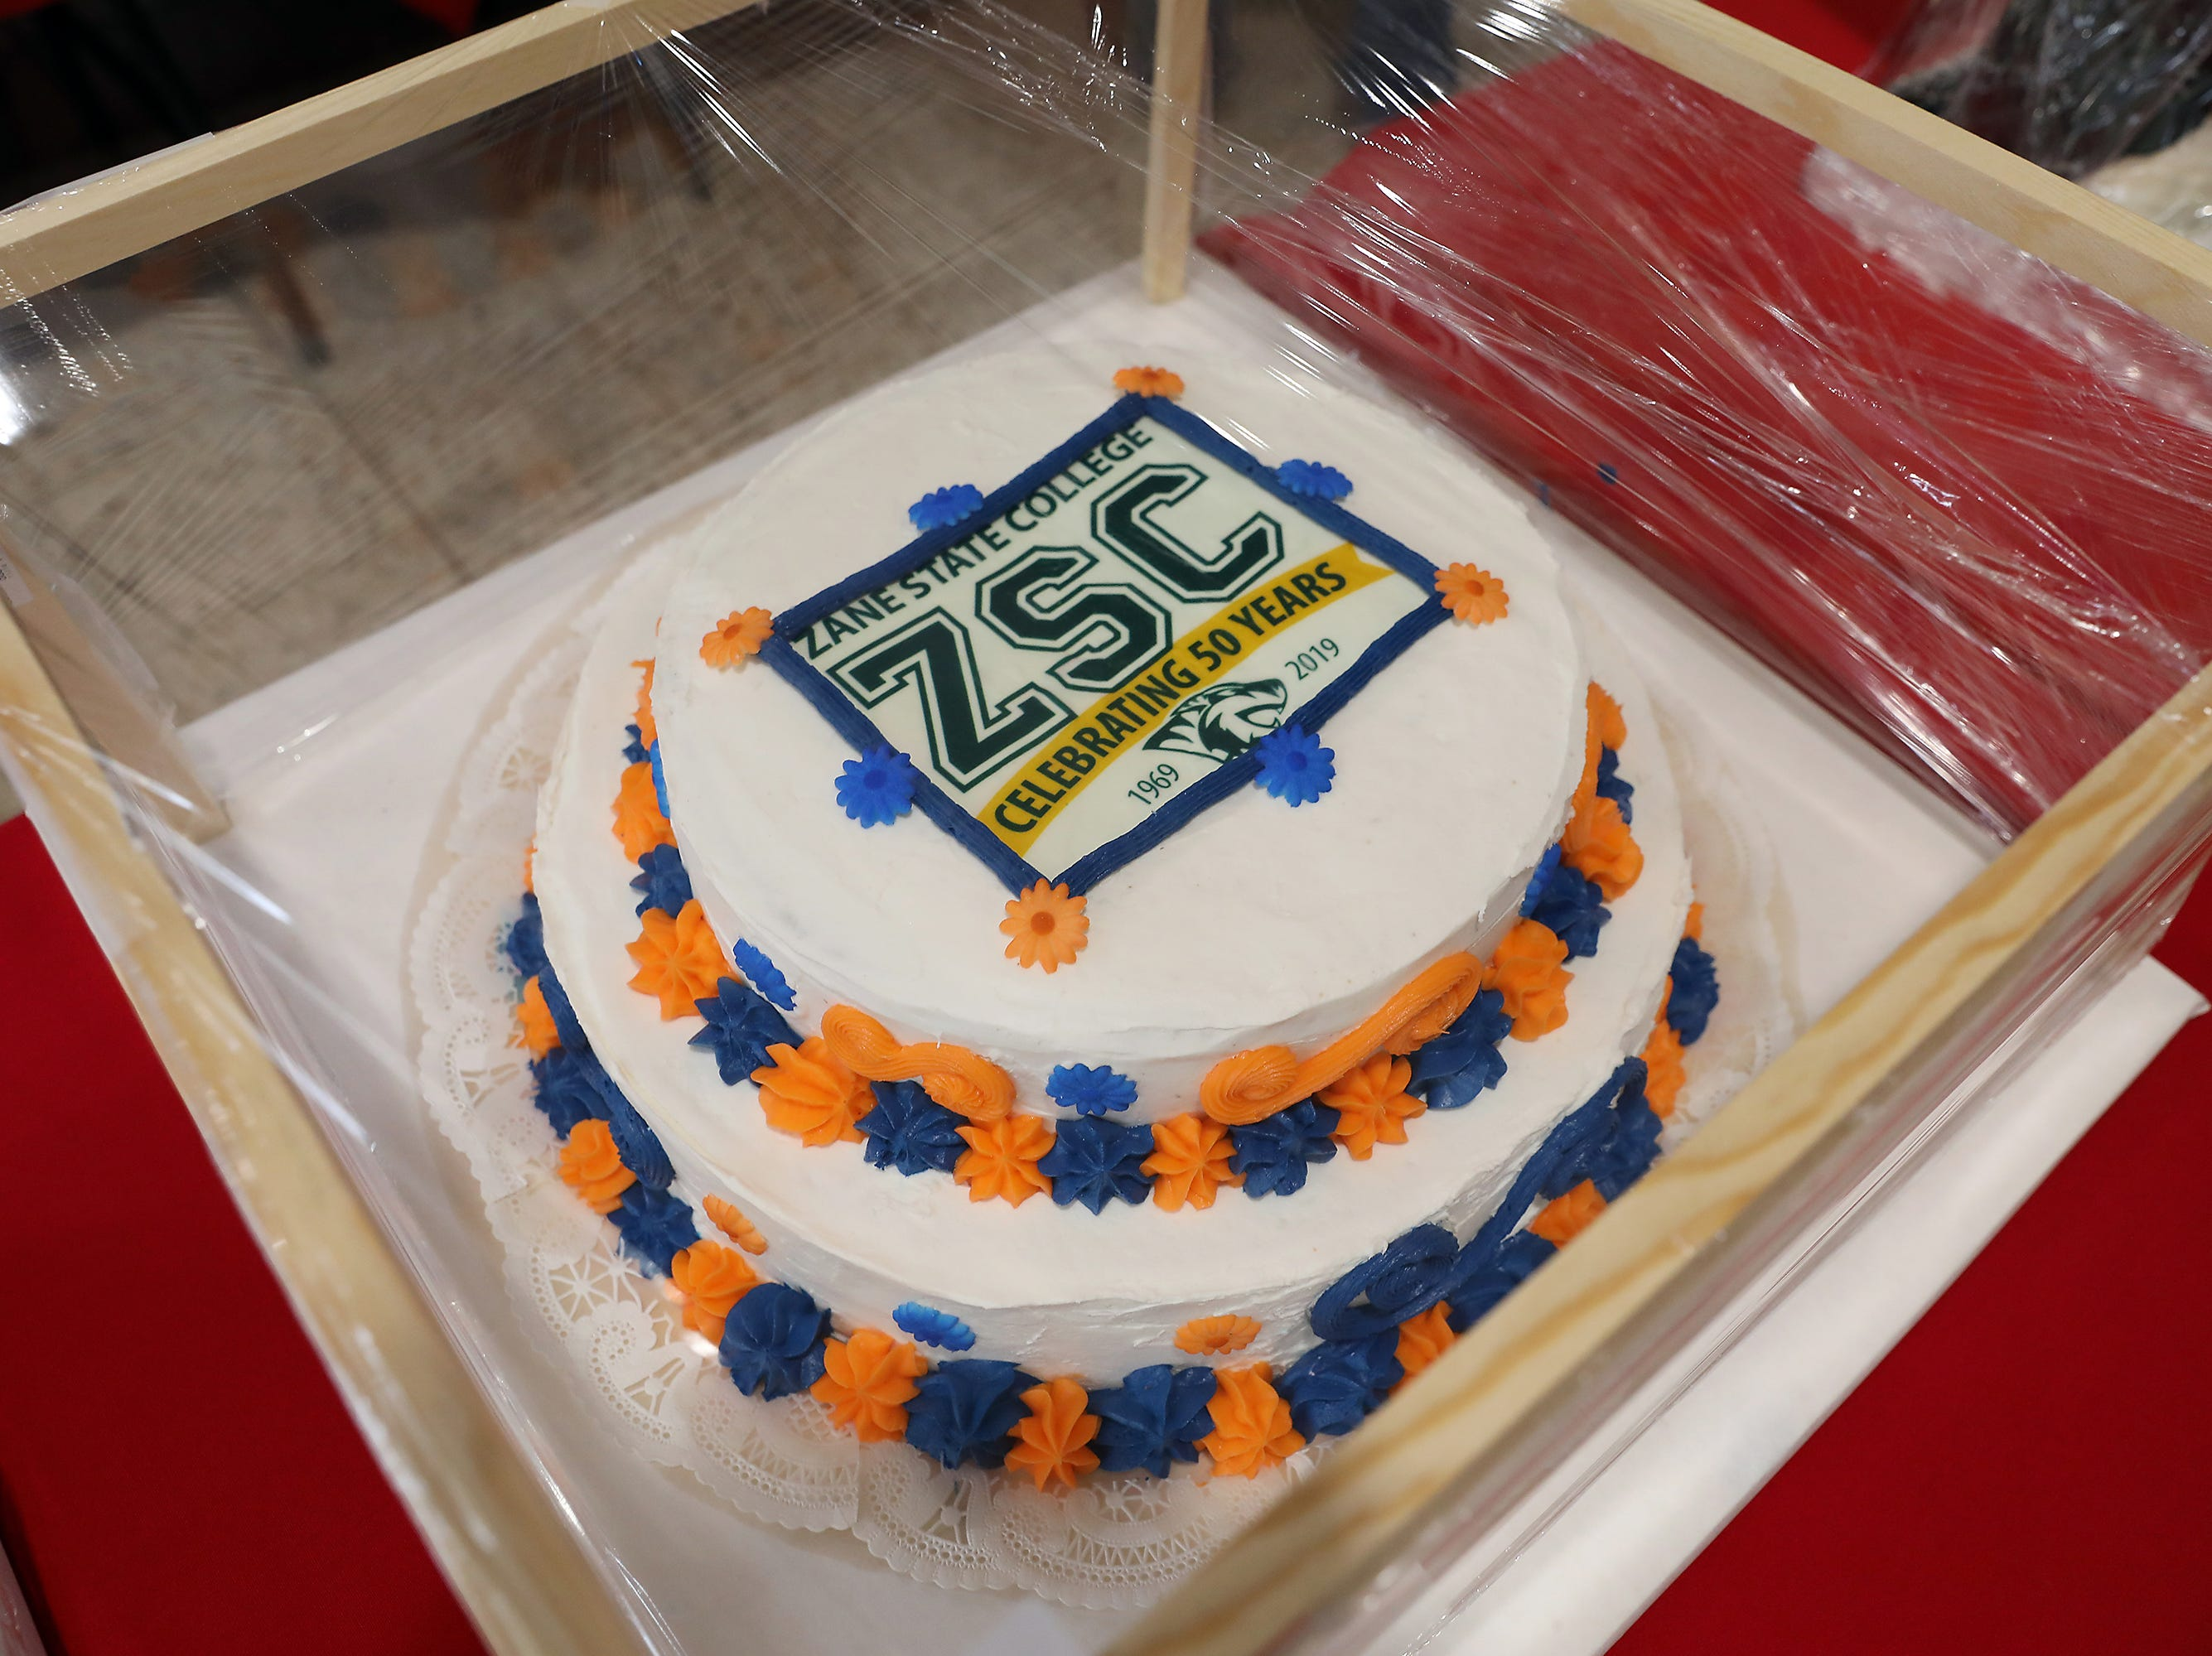 10 A.M. Thursday cake 45 Zane State College - Retro Zane State Tt-shirt, windbreaker, 50th anniversary commemorative merchandise; $75